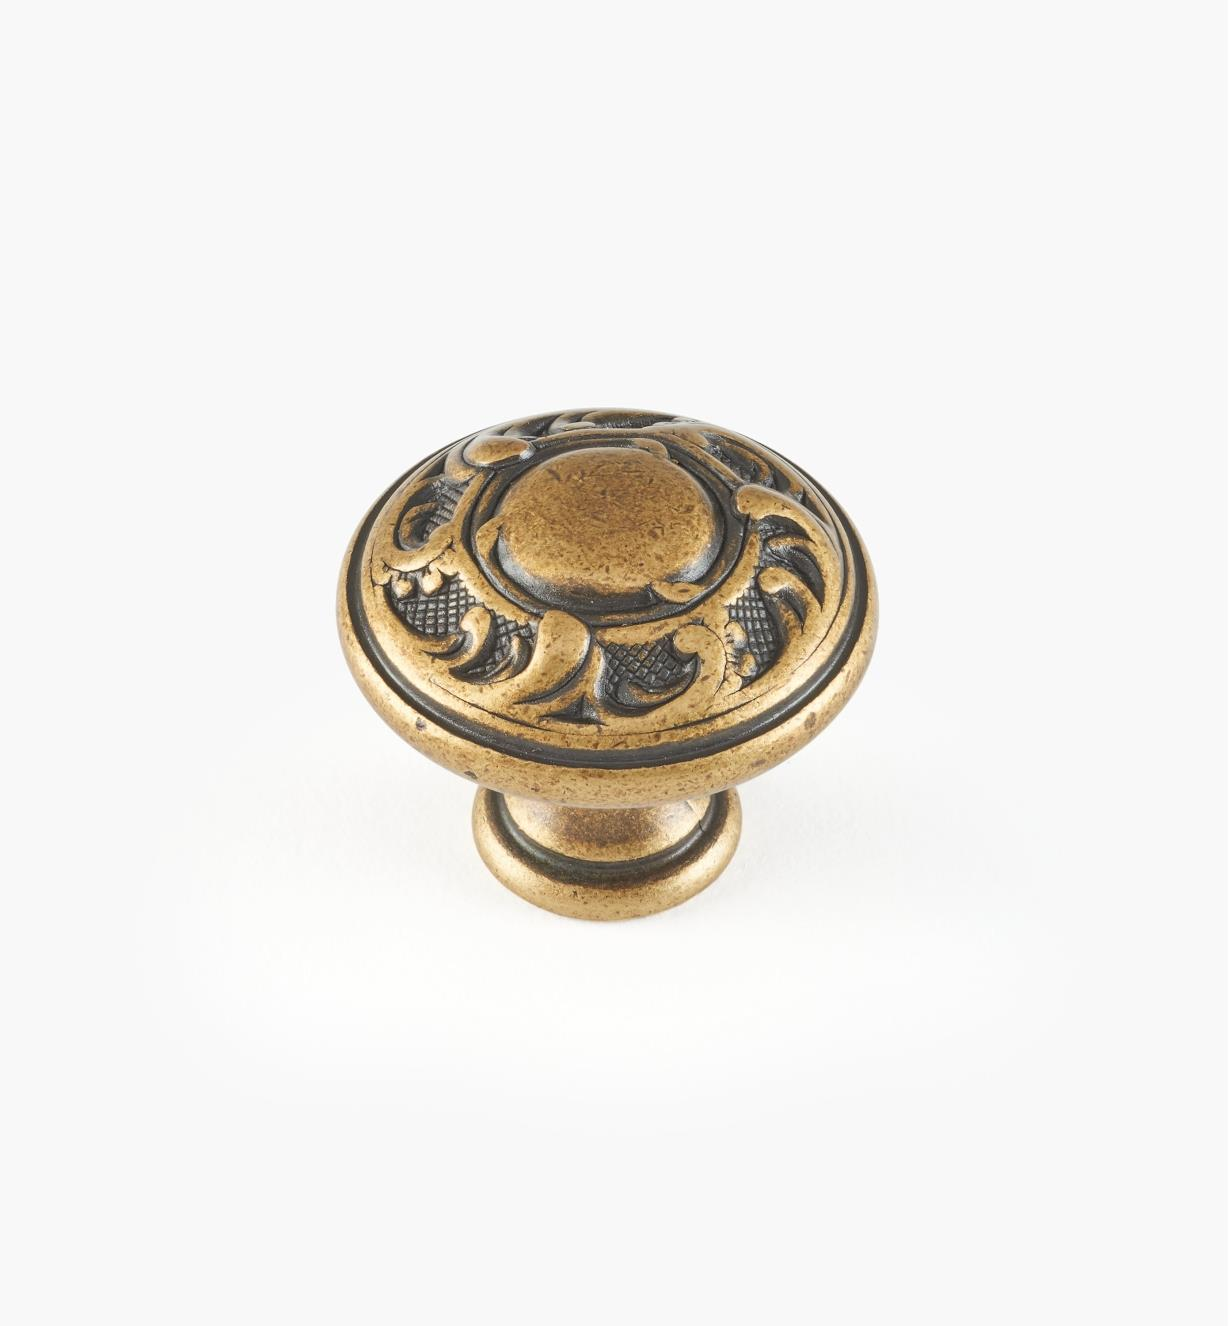 01A5111 - 30mm x 26mm Louis XV Knob